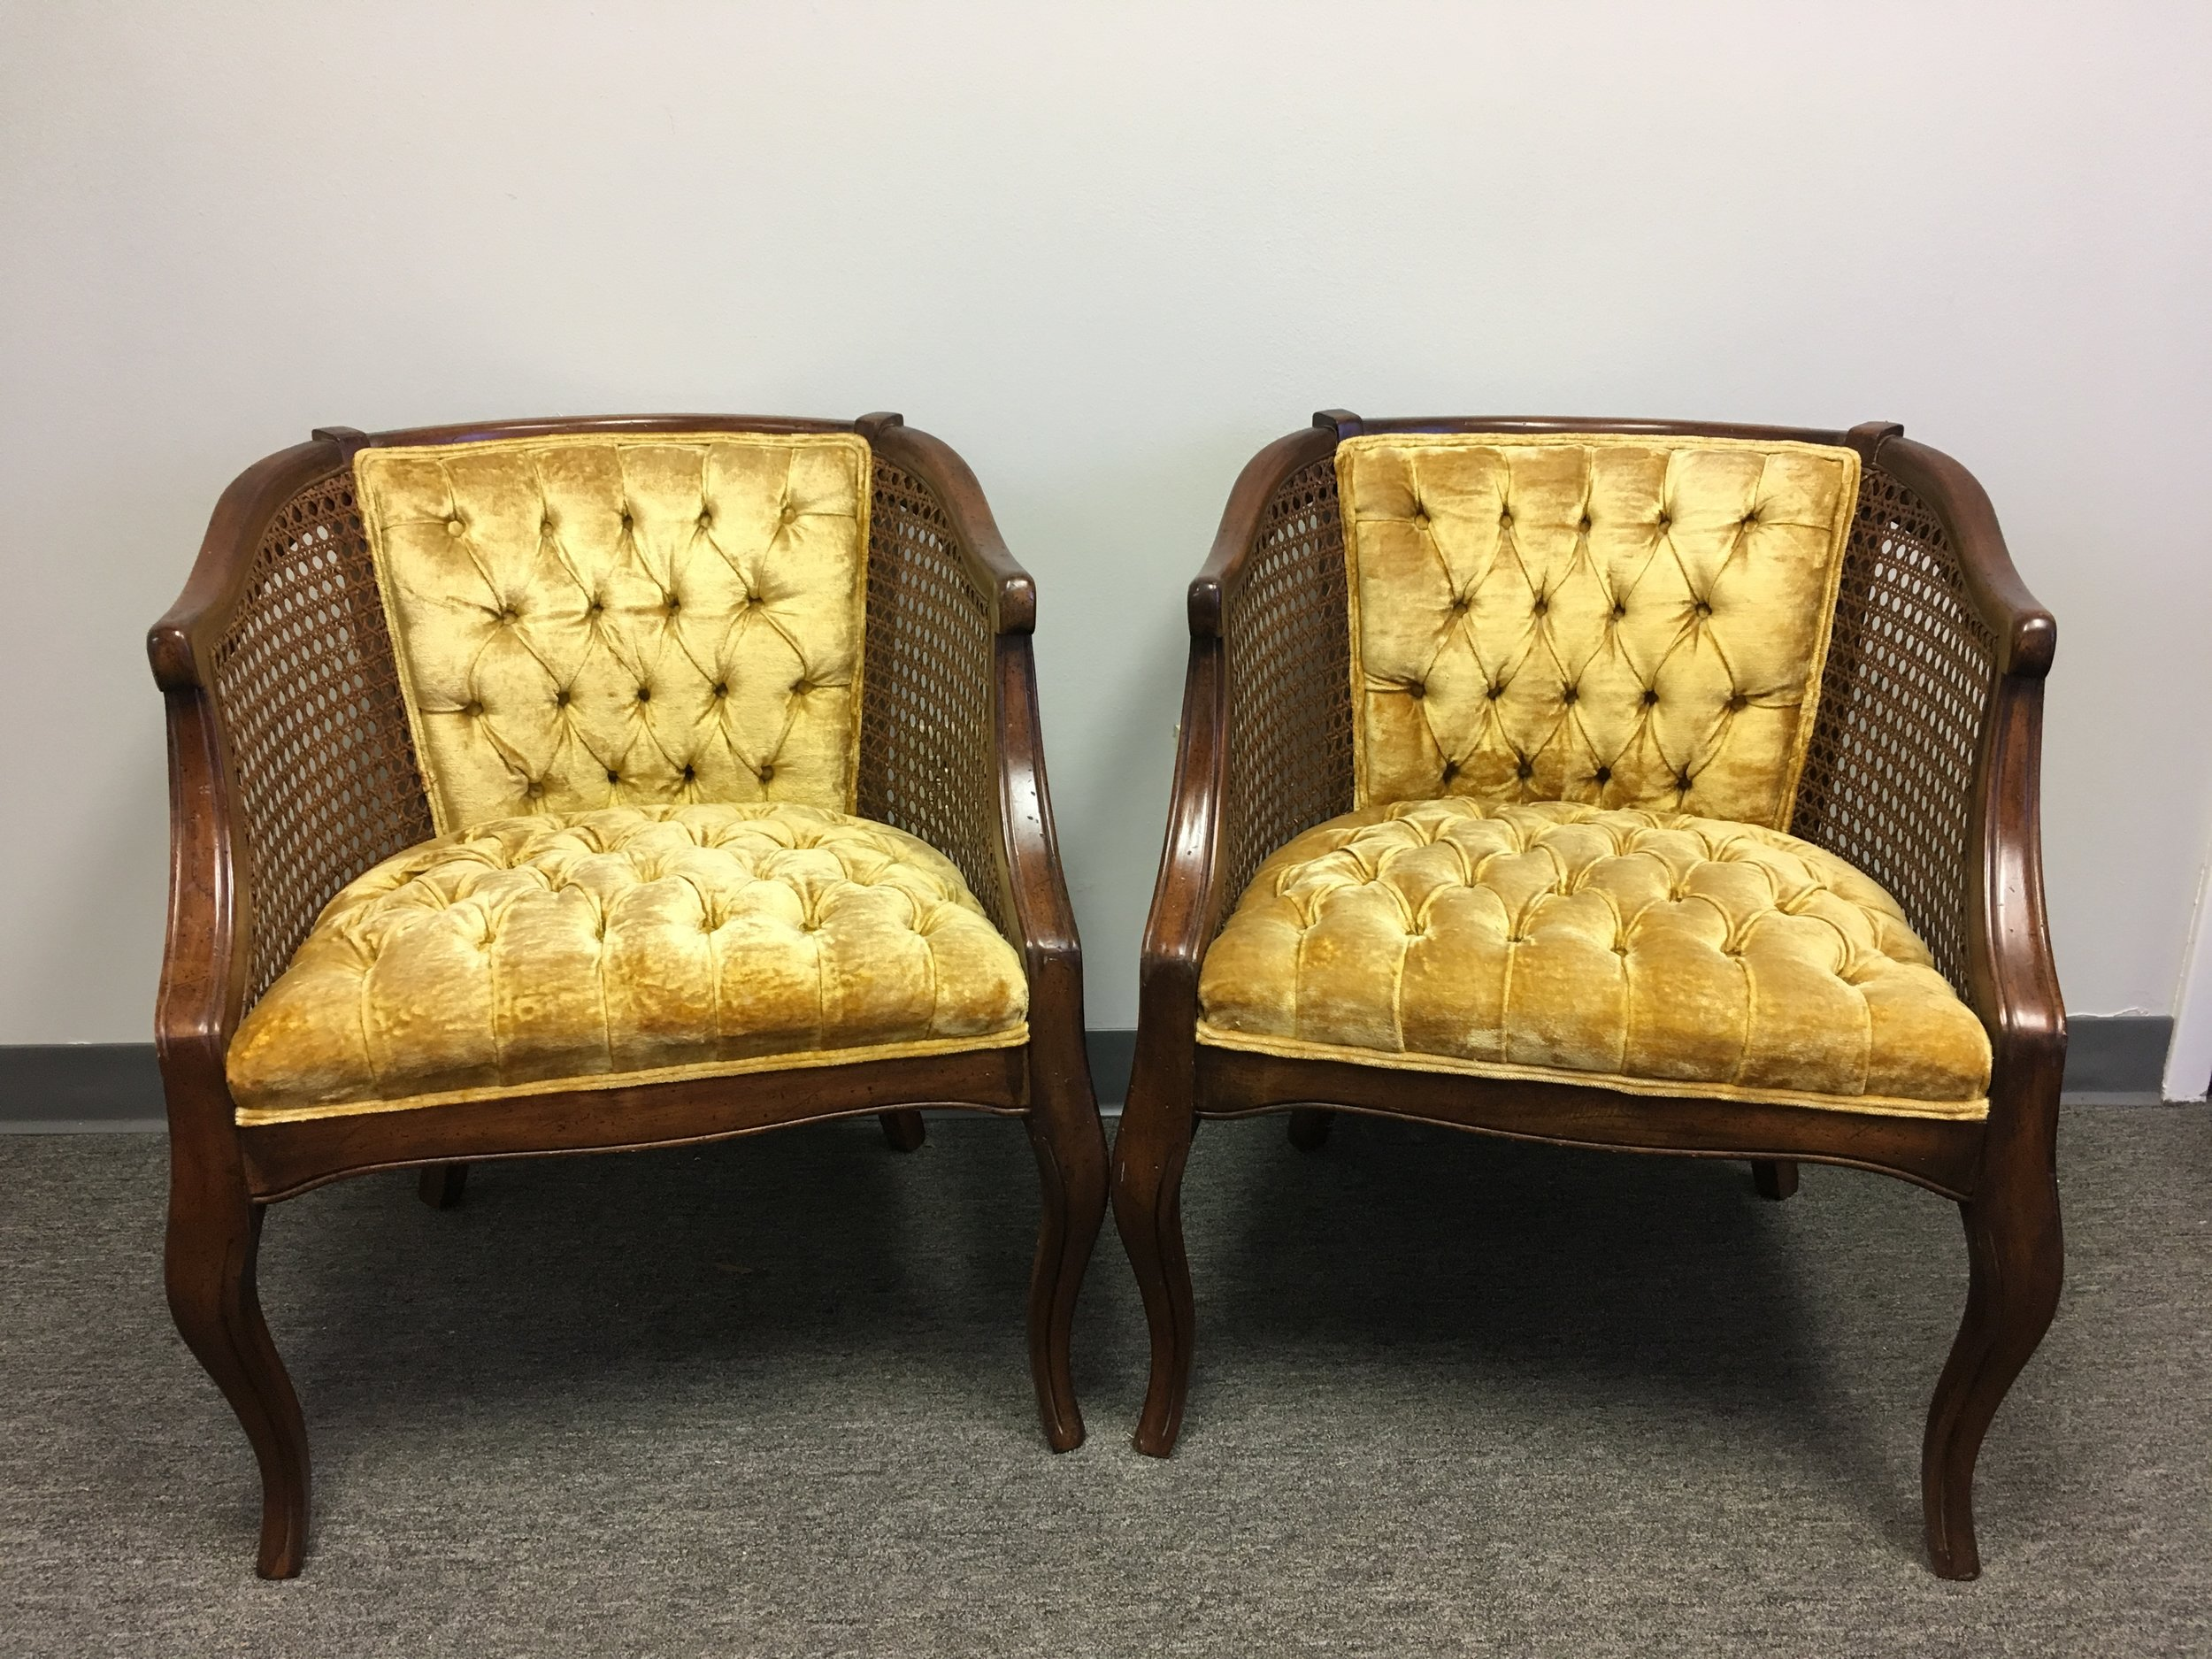 Gold Tufted Chairs (2)